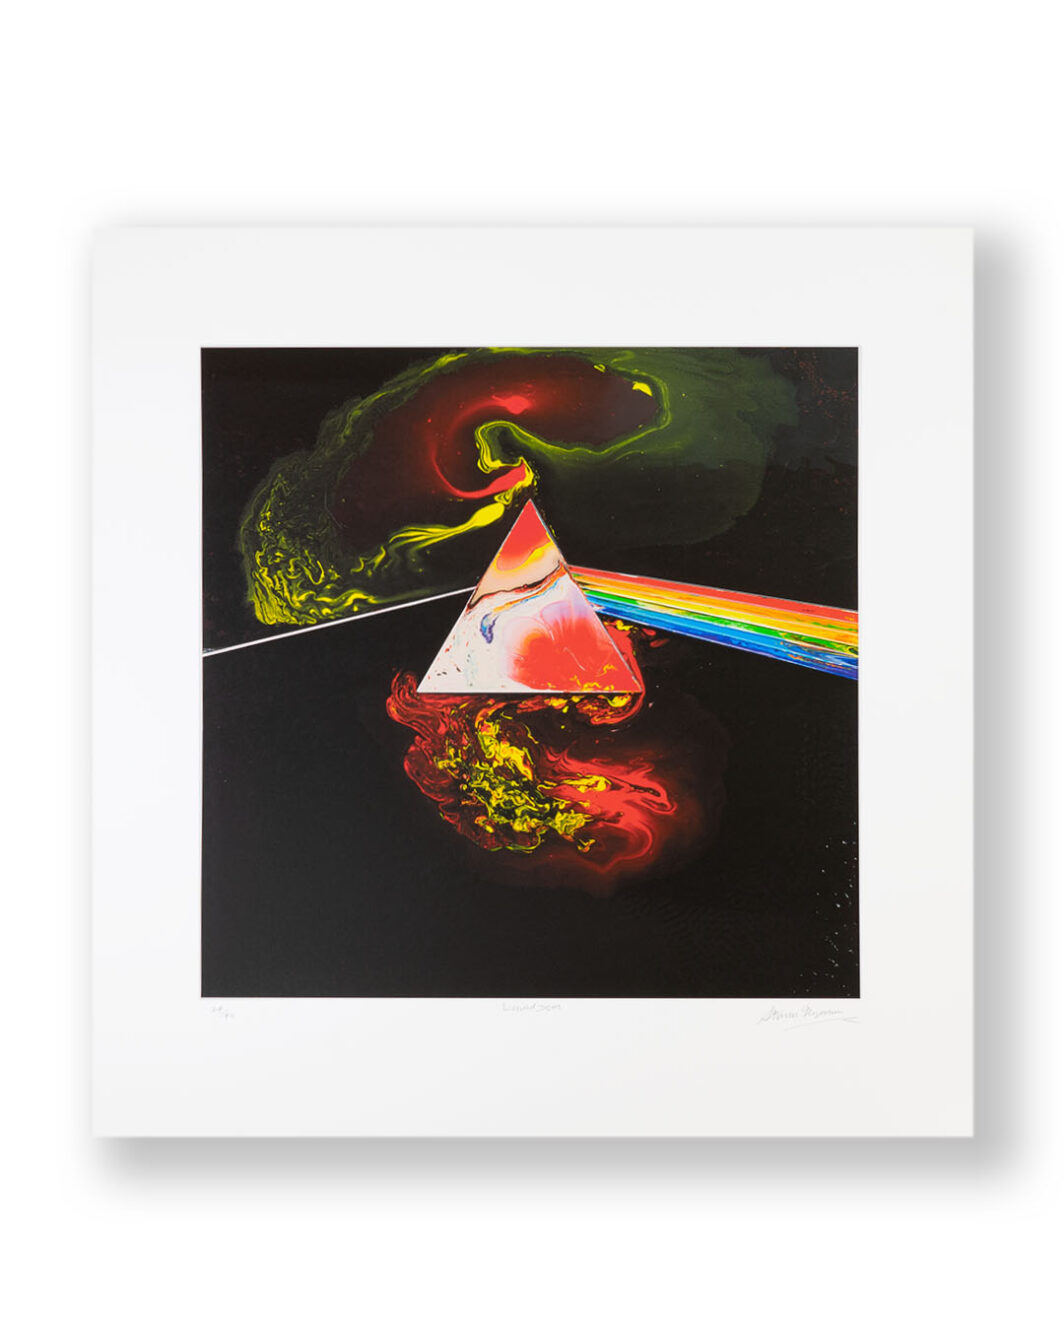 THE MOON SIGNED BY STORM THORGERSON